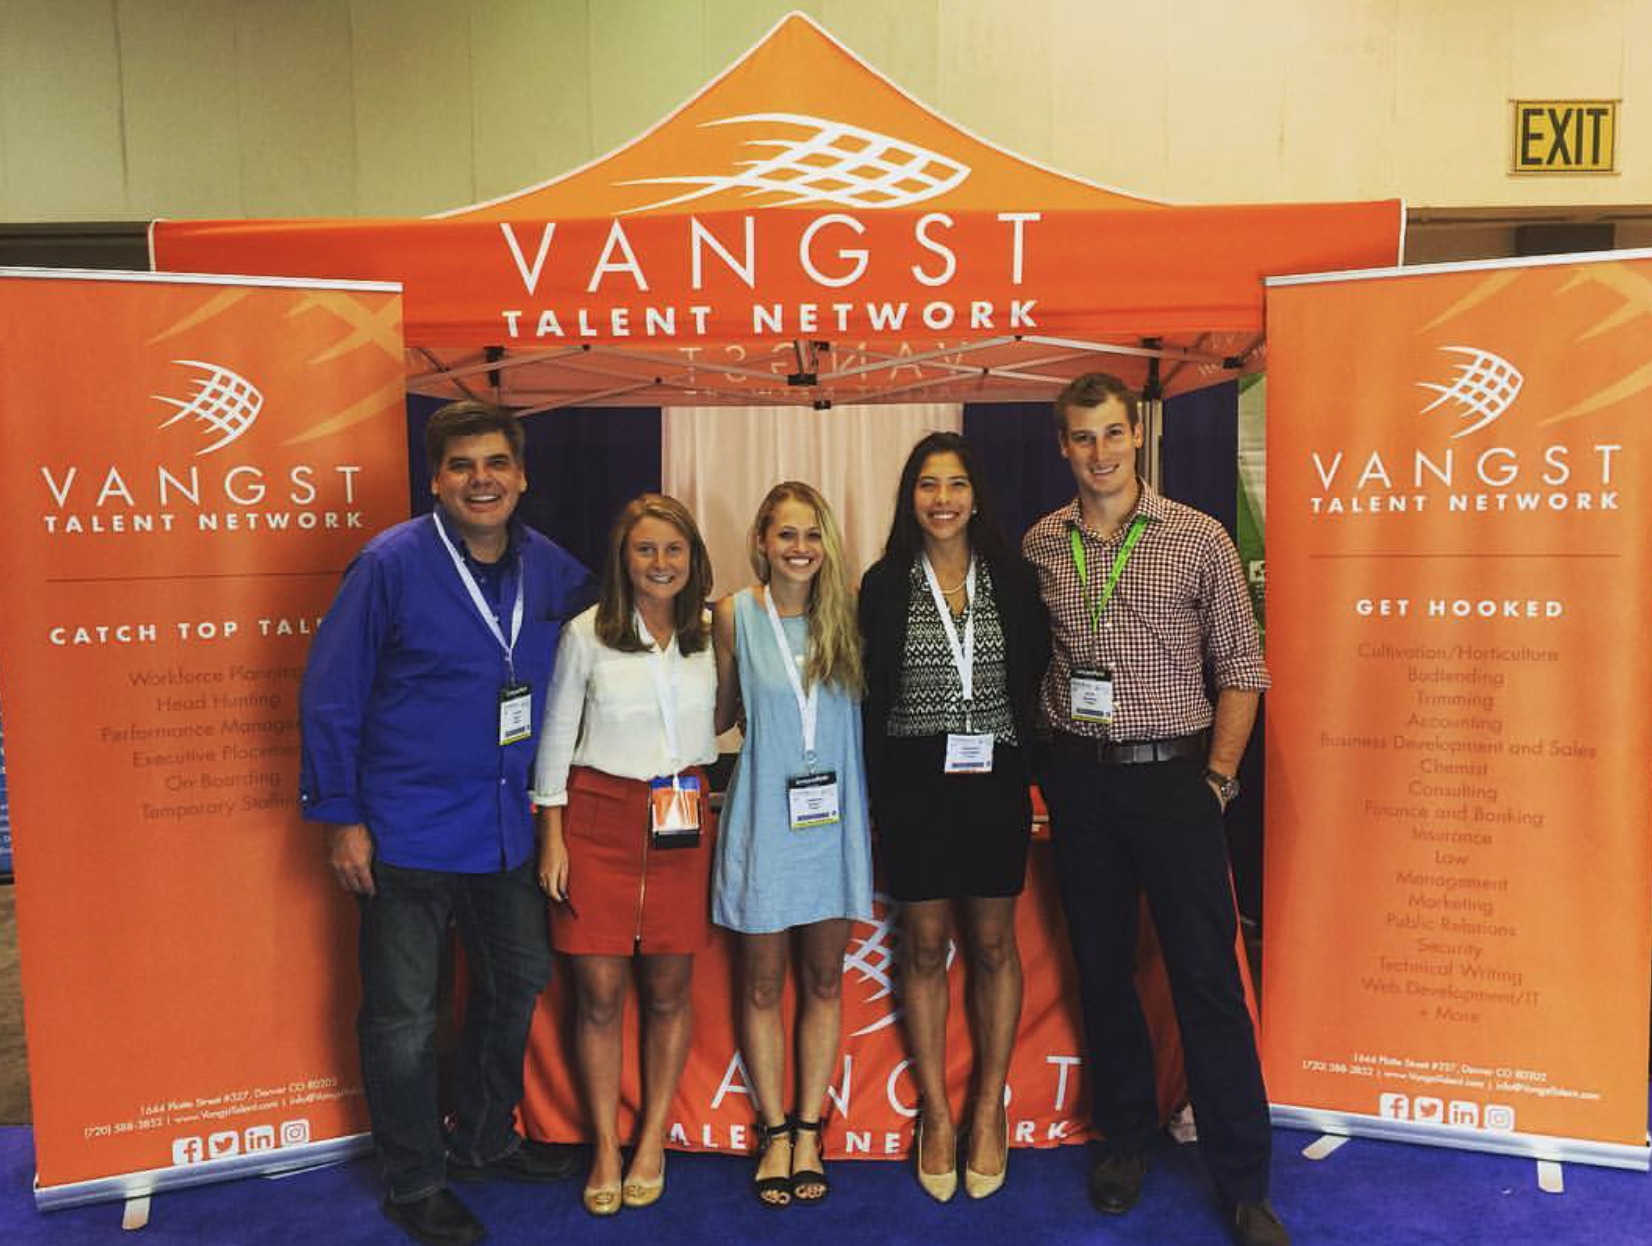 Karson Humiston (second from left) with four Vangst recruiters